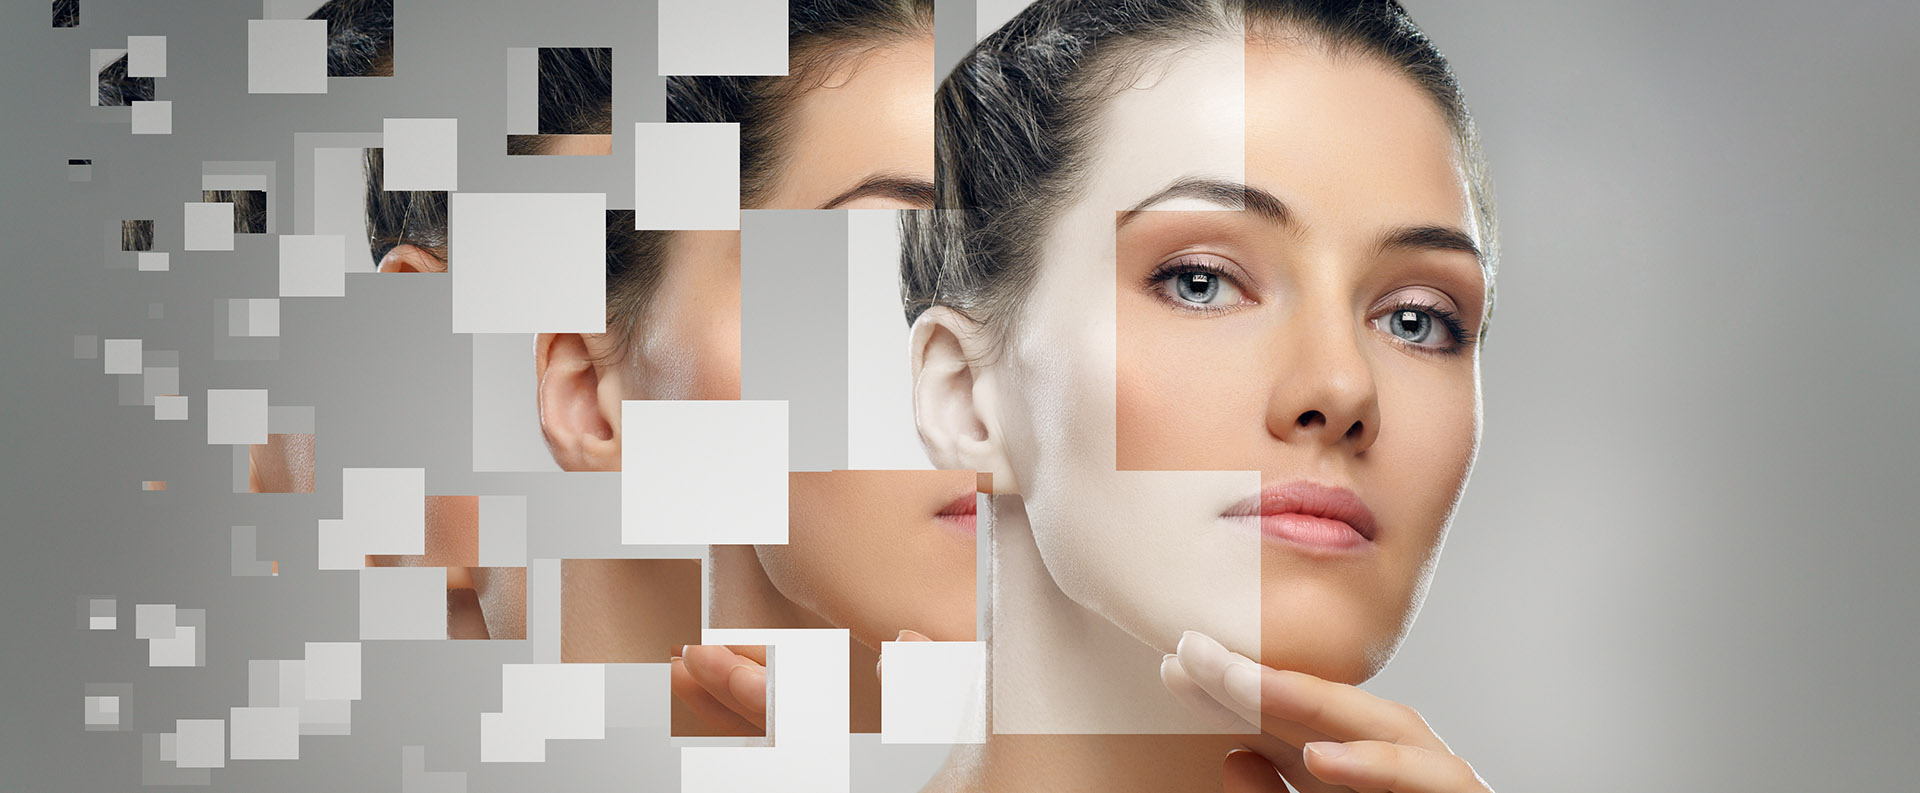 Skin care tips from MiracleFace MedSpa